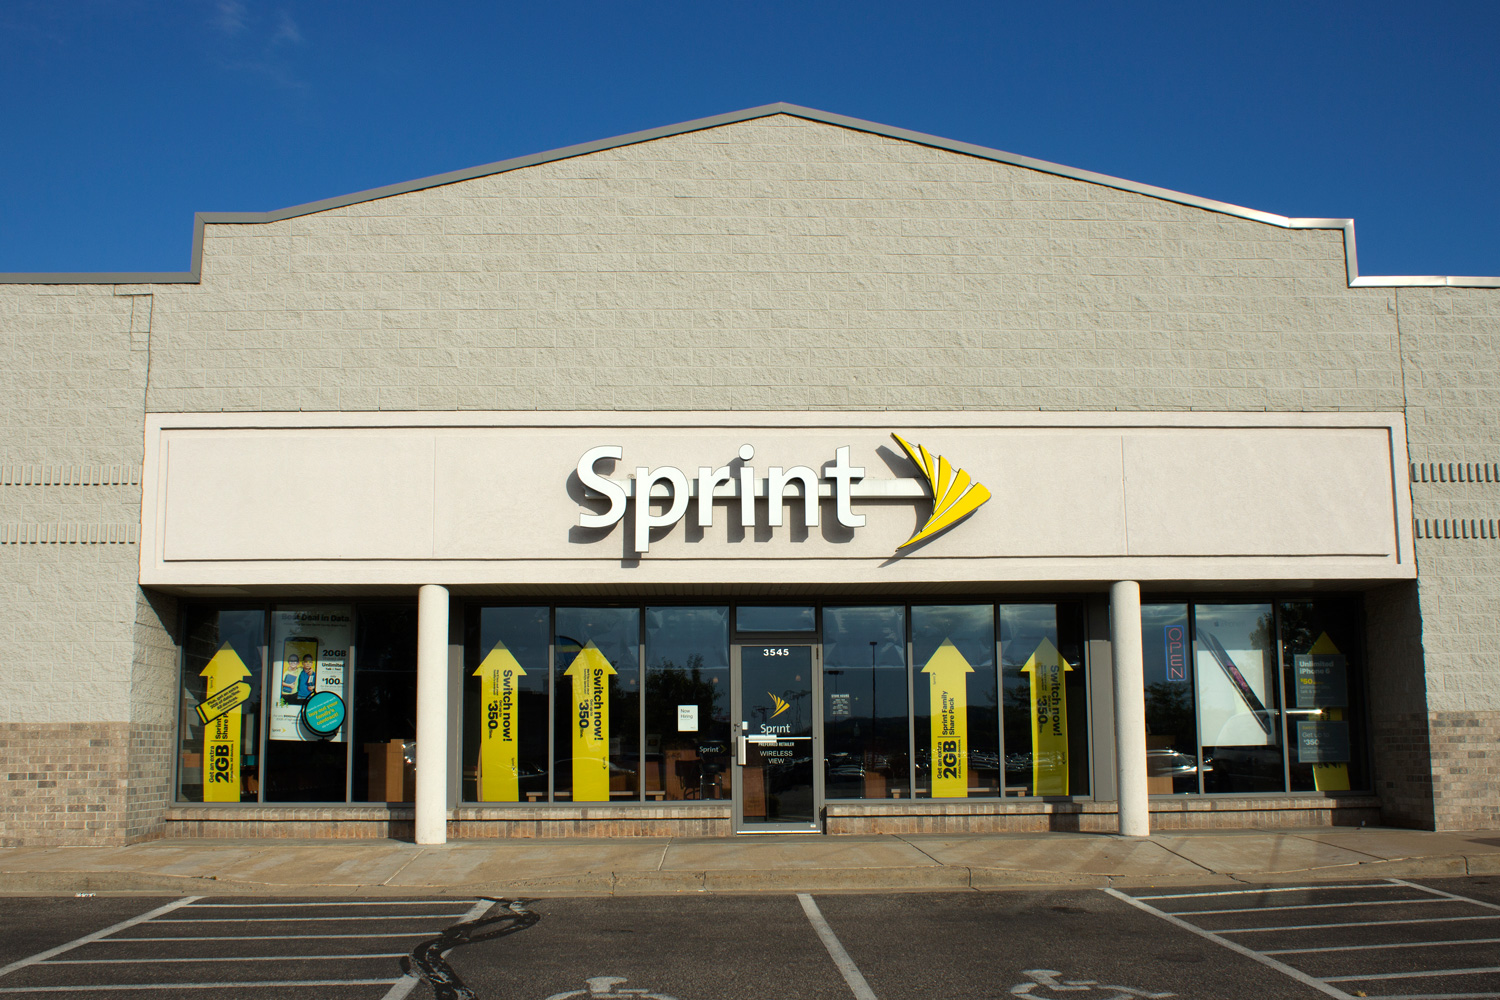 sprint-store-headquarters-hq-building-sign-logo